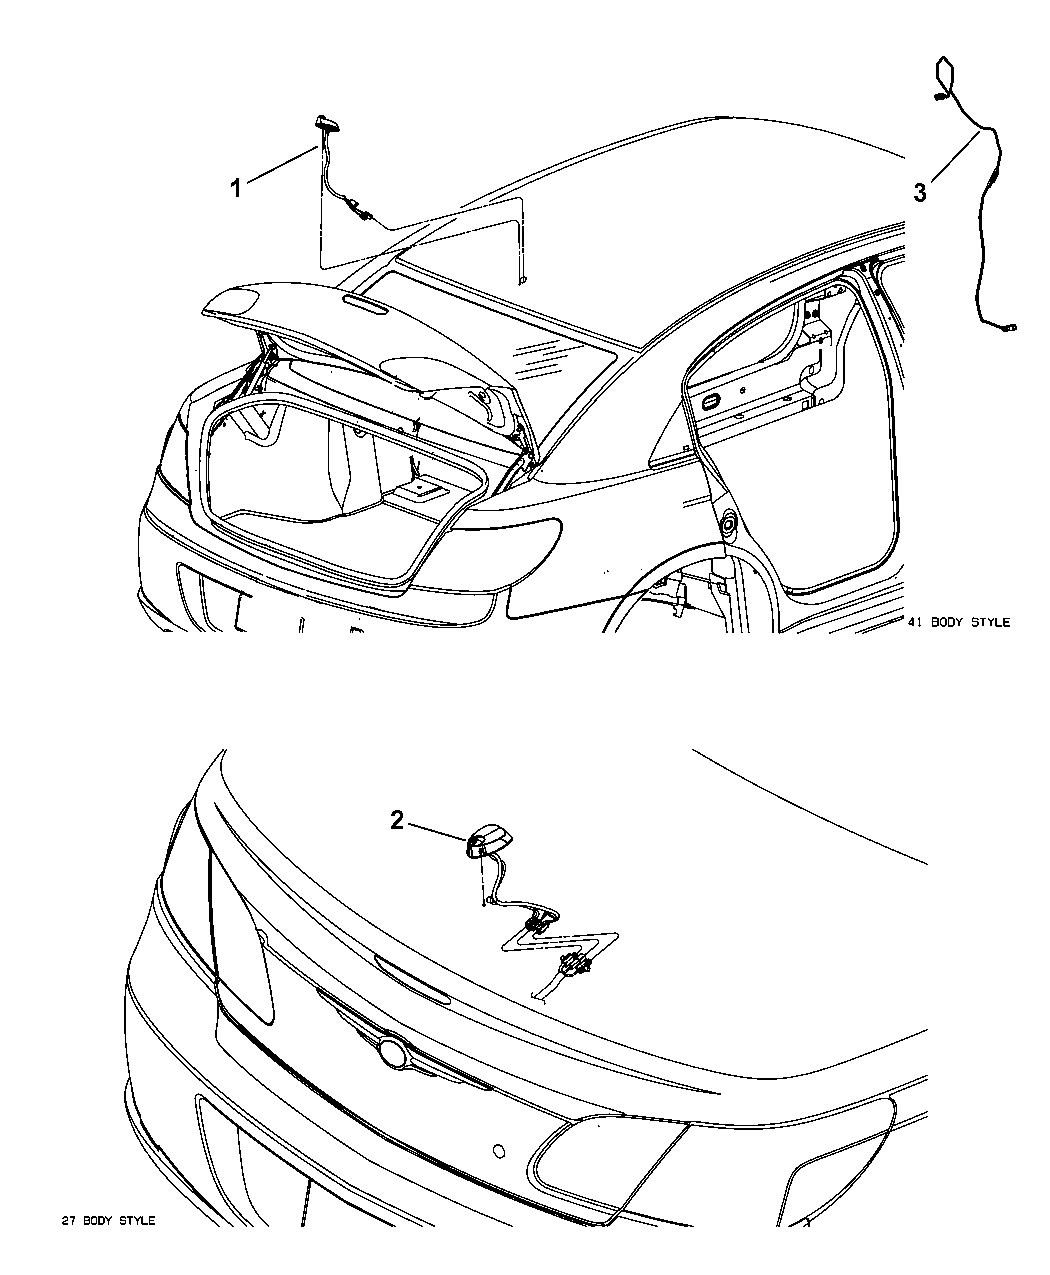 26 2008 Chrysler Sebring Convertible Parts Diagram